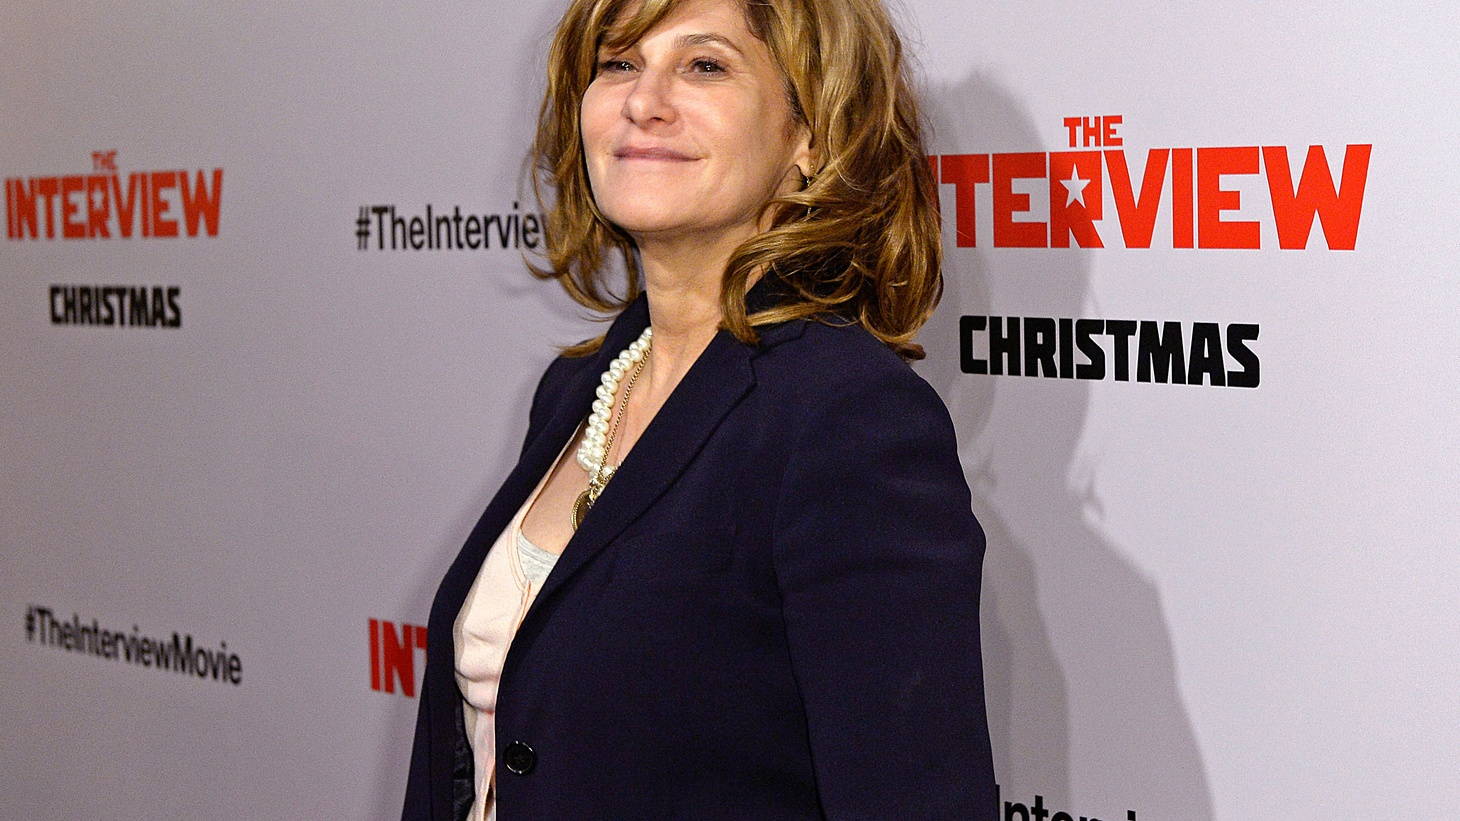 Scripts, salaries and entire pictures have been released by Internet hackers who penetrated Sony Pictures, but the biggest damage to the studio's image may come from e-mails featuring co-chair Amy Pascal. Tweeters, commentators and columnists say they reveal the depth of racism hiding in supposedly liberal Hollywood.